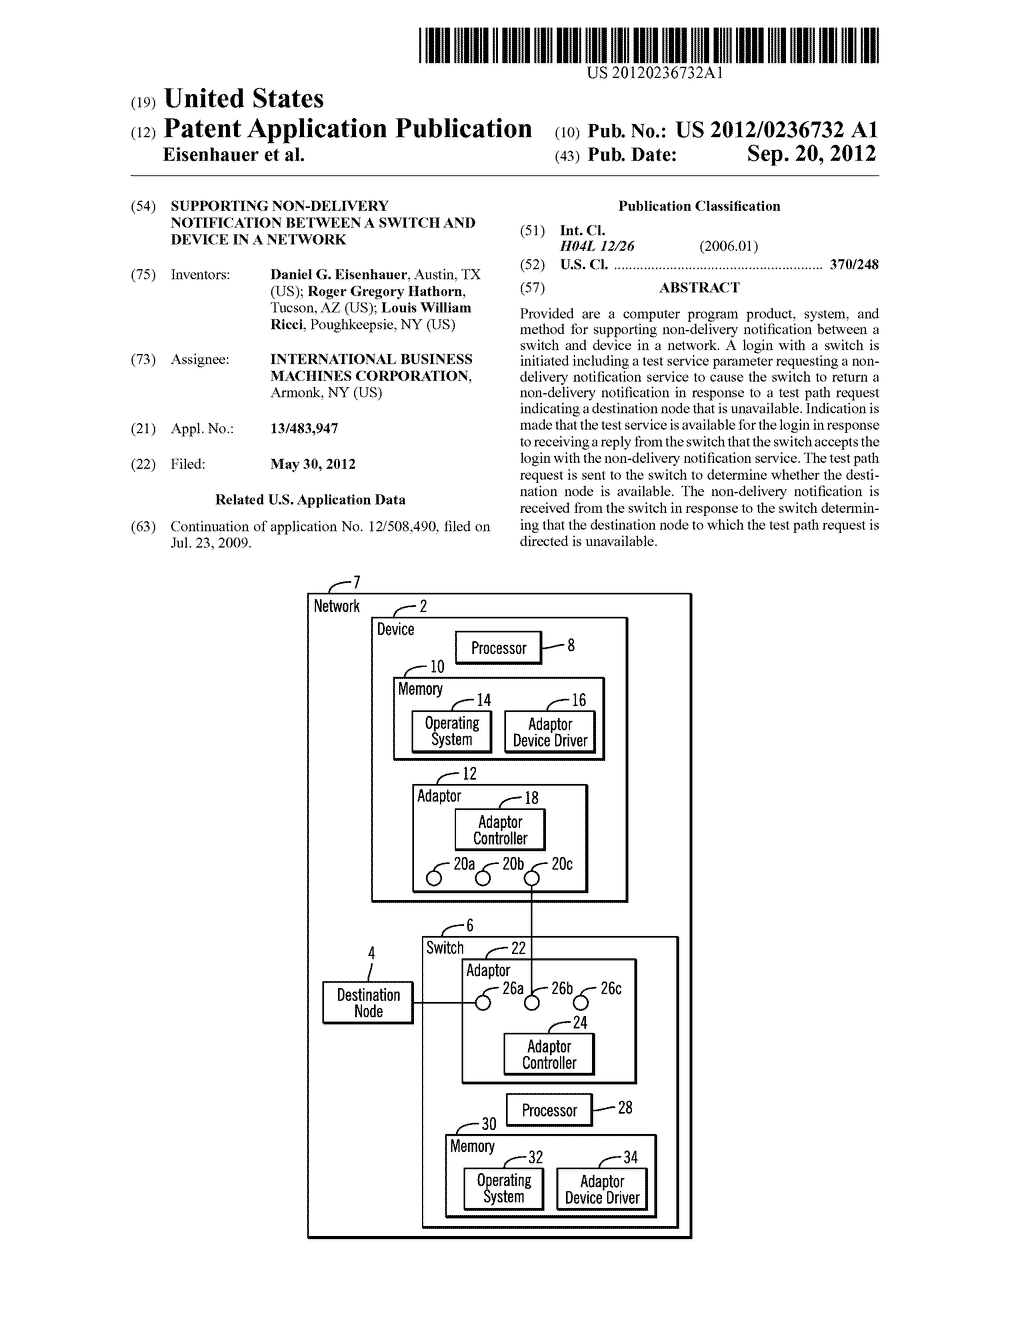 SUPPORTING NON-DELIVERY NOTIFICATION BETWEEN A SWITCH AND DEVICE IN A     NETWORK - diagram, schematic, and image 01